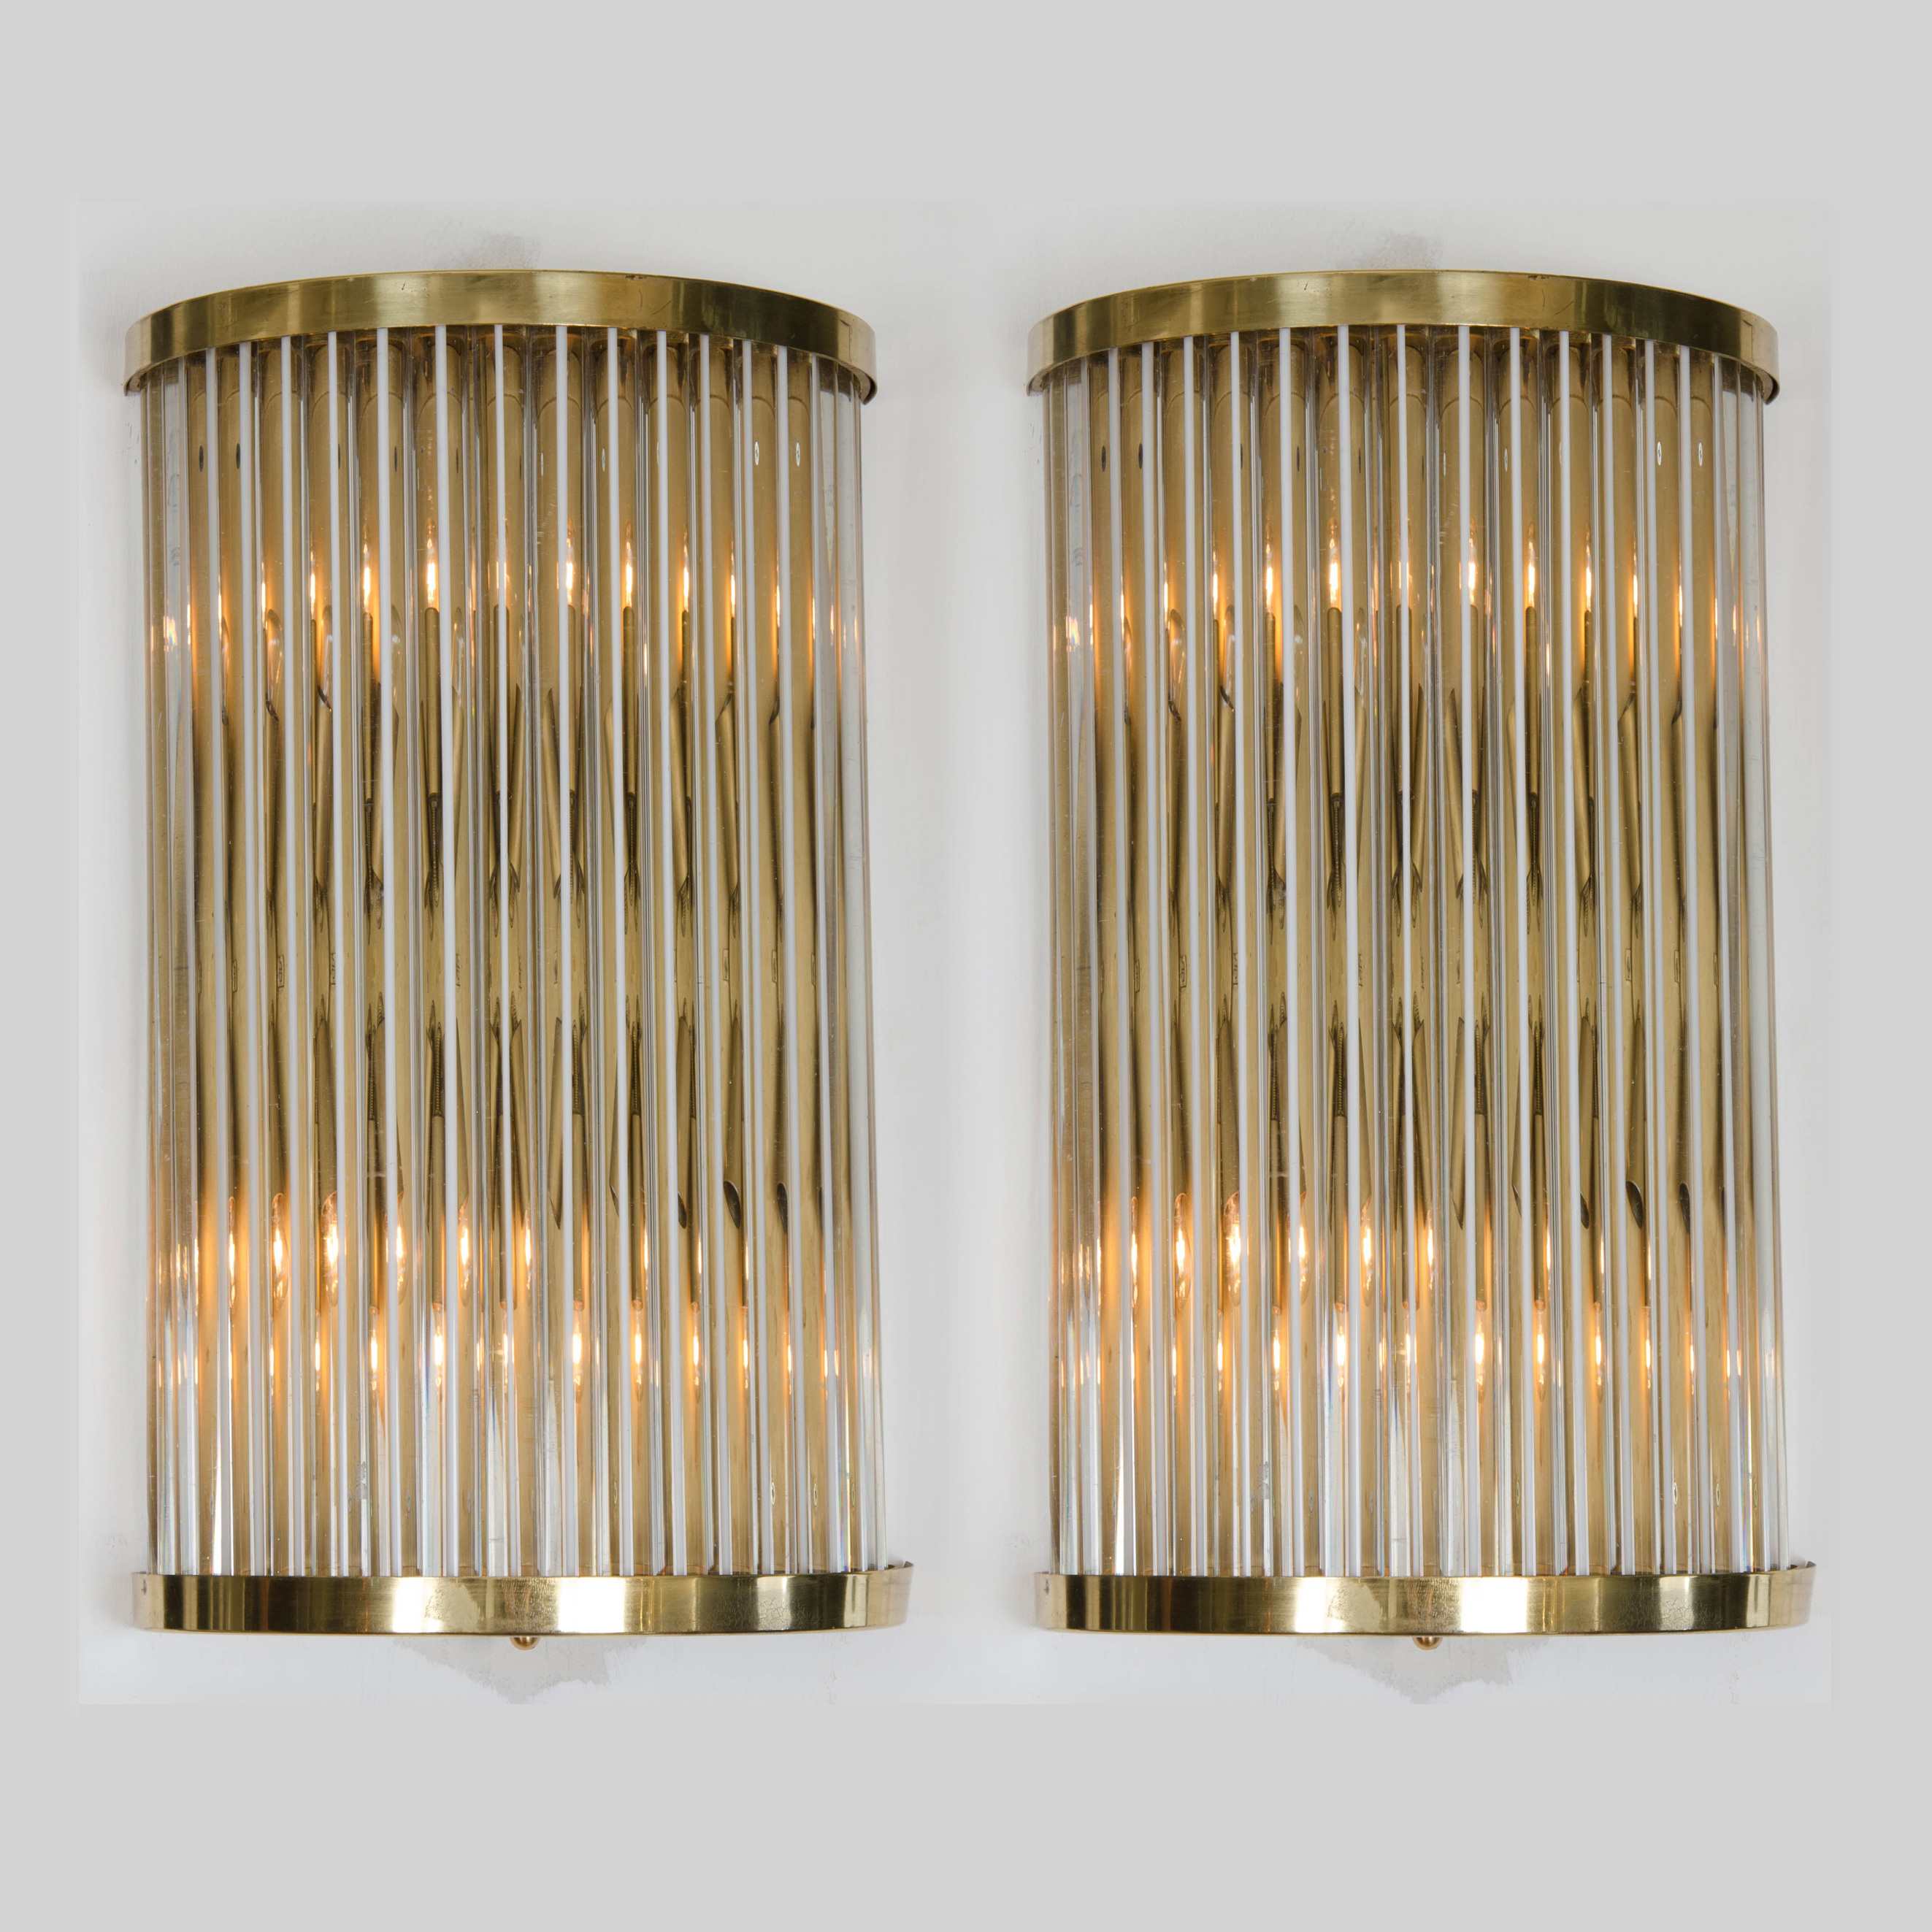 Pair of deco murano wall lights valerie wade pair of deco murano wall lights mozeypictures Gallery